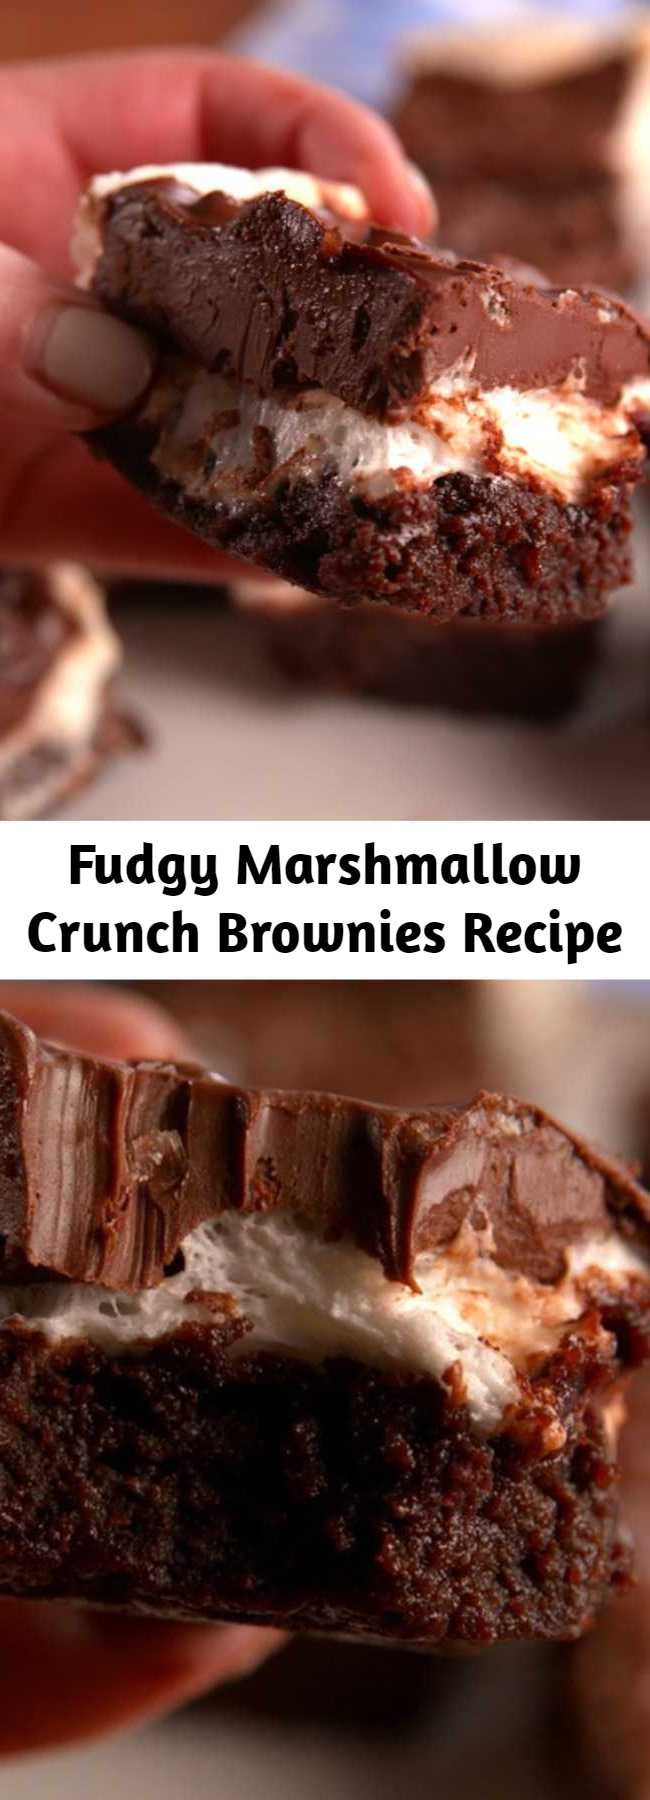 Fudgy Marshmallow Crunch Brownies Recipe - Fudgy, chewy, and completely gluten-free. Super fudgy brownies topped with a layer of marshmallows and a chocolate, peanut butter and Rice Krispies mixture.